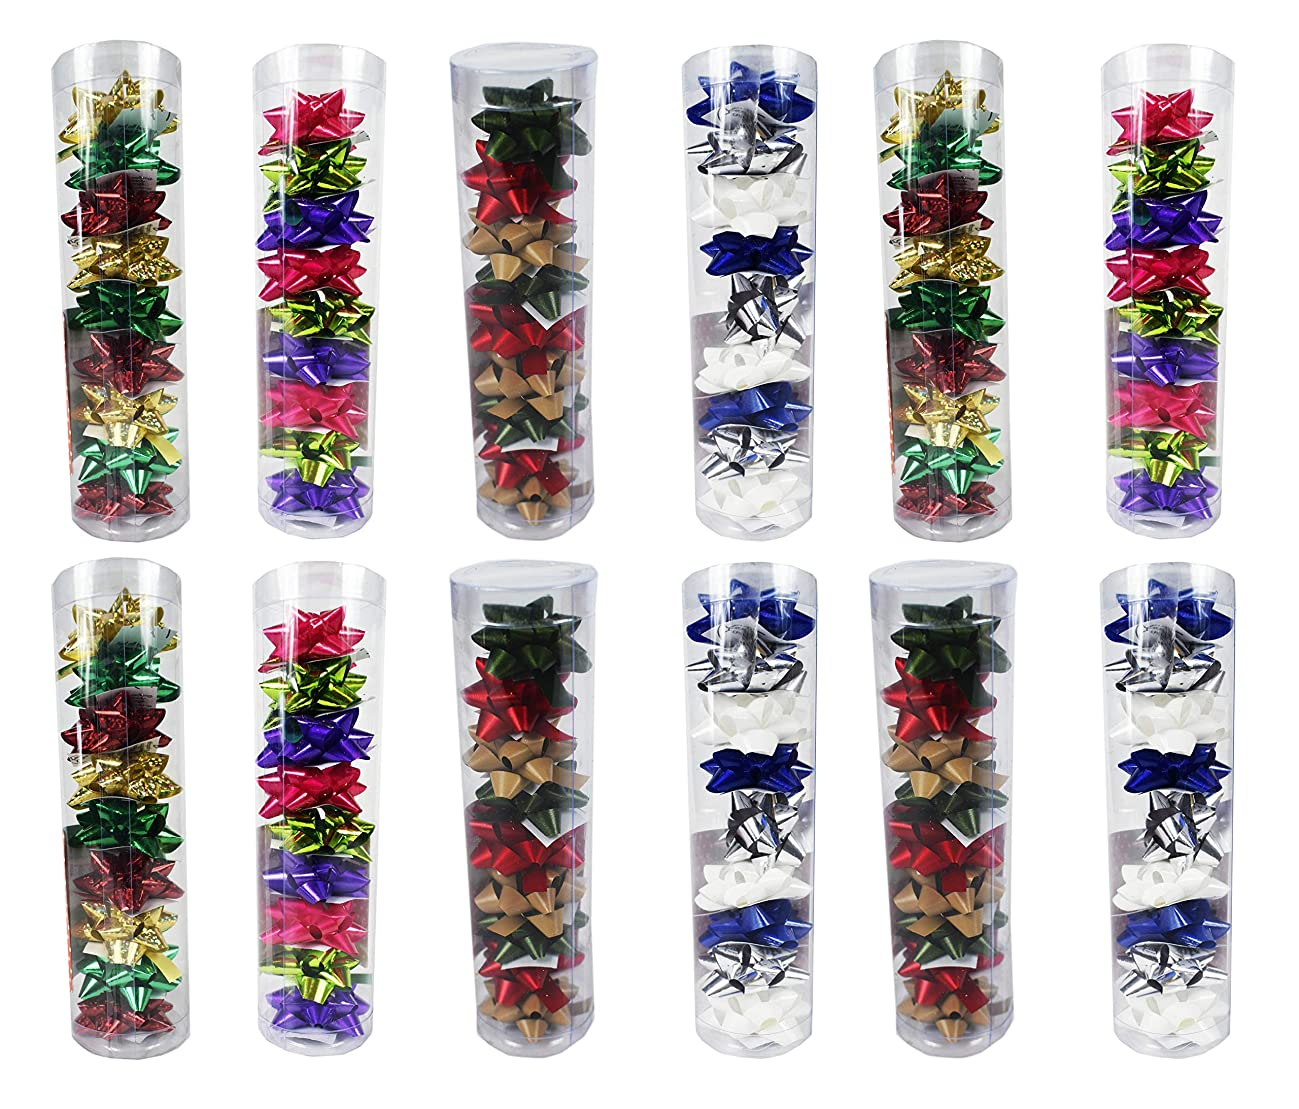 Set of 108 Mini Gift Bows! Peel-and-Stick Back! Perfect for Gift Wrapping! Featuring 12 Different Colors! (108 Mini Bows)